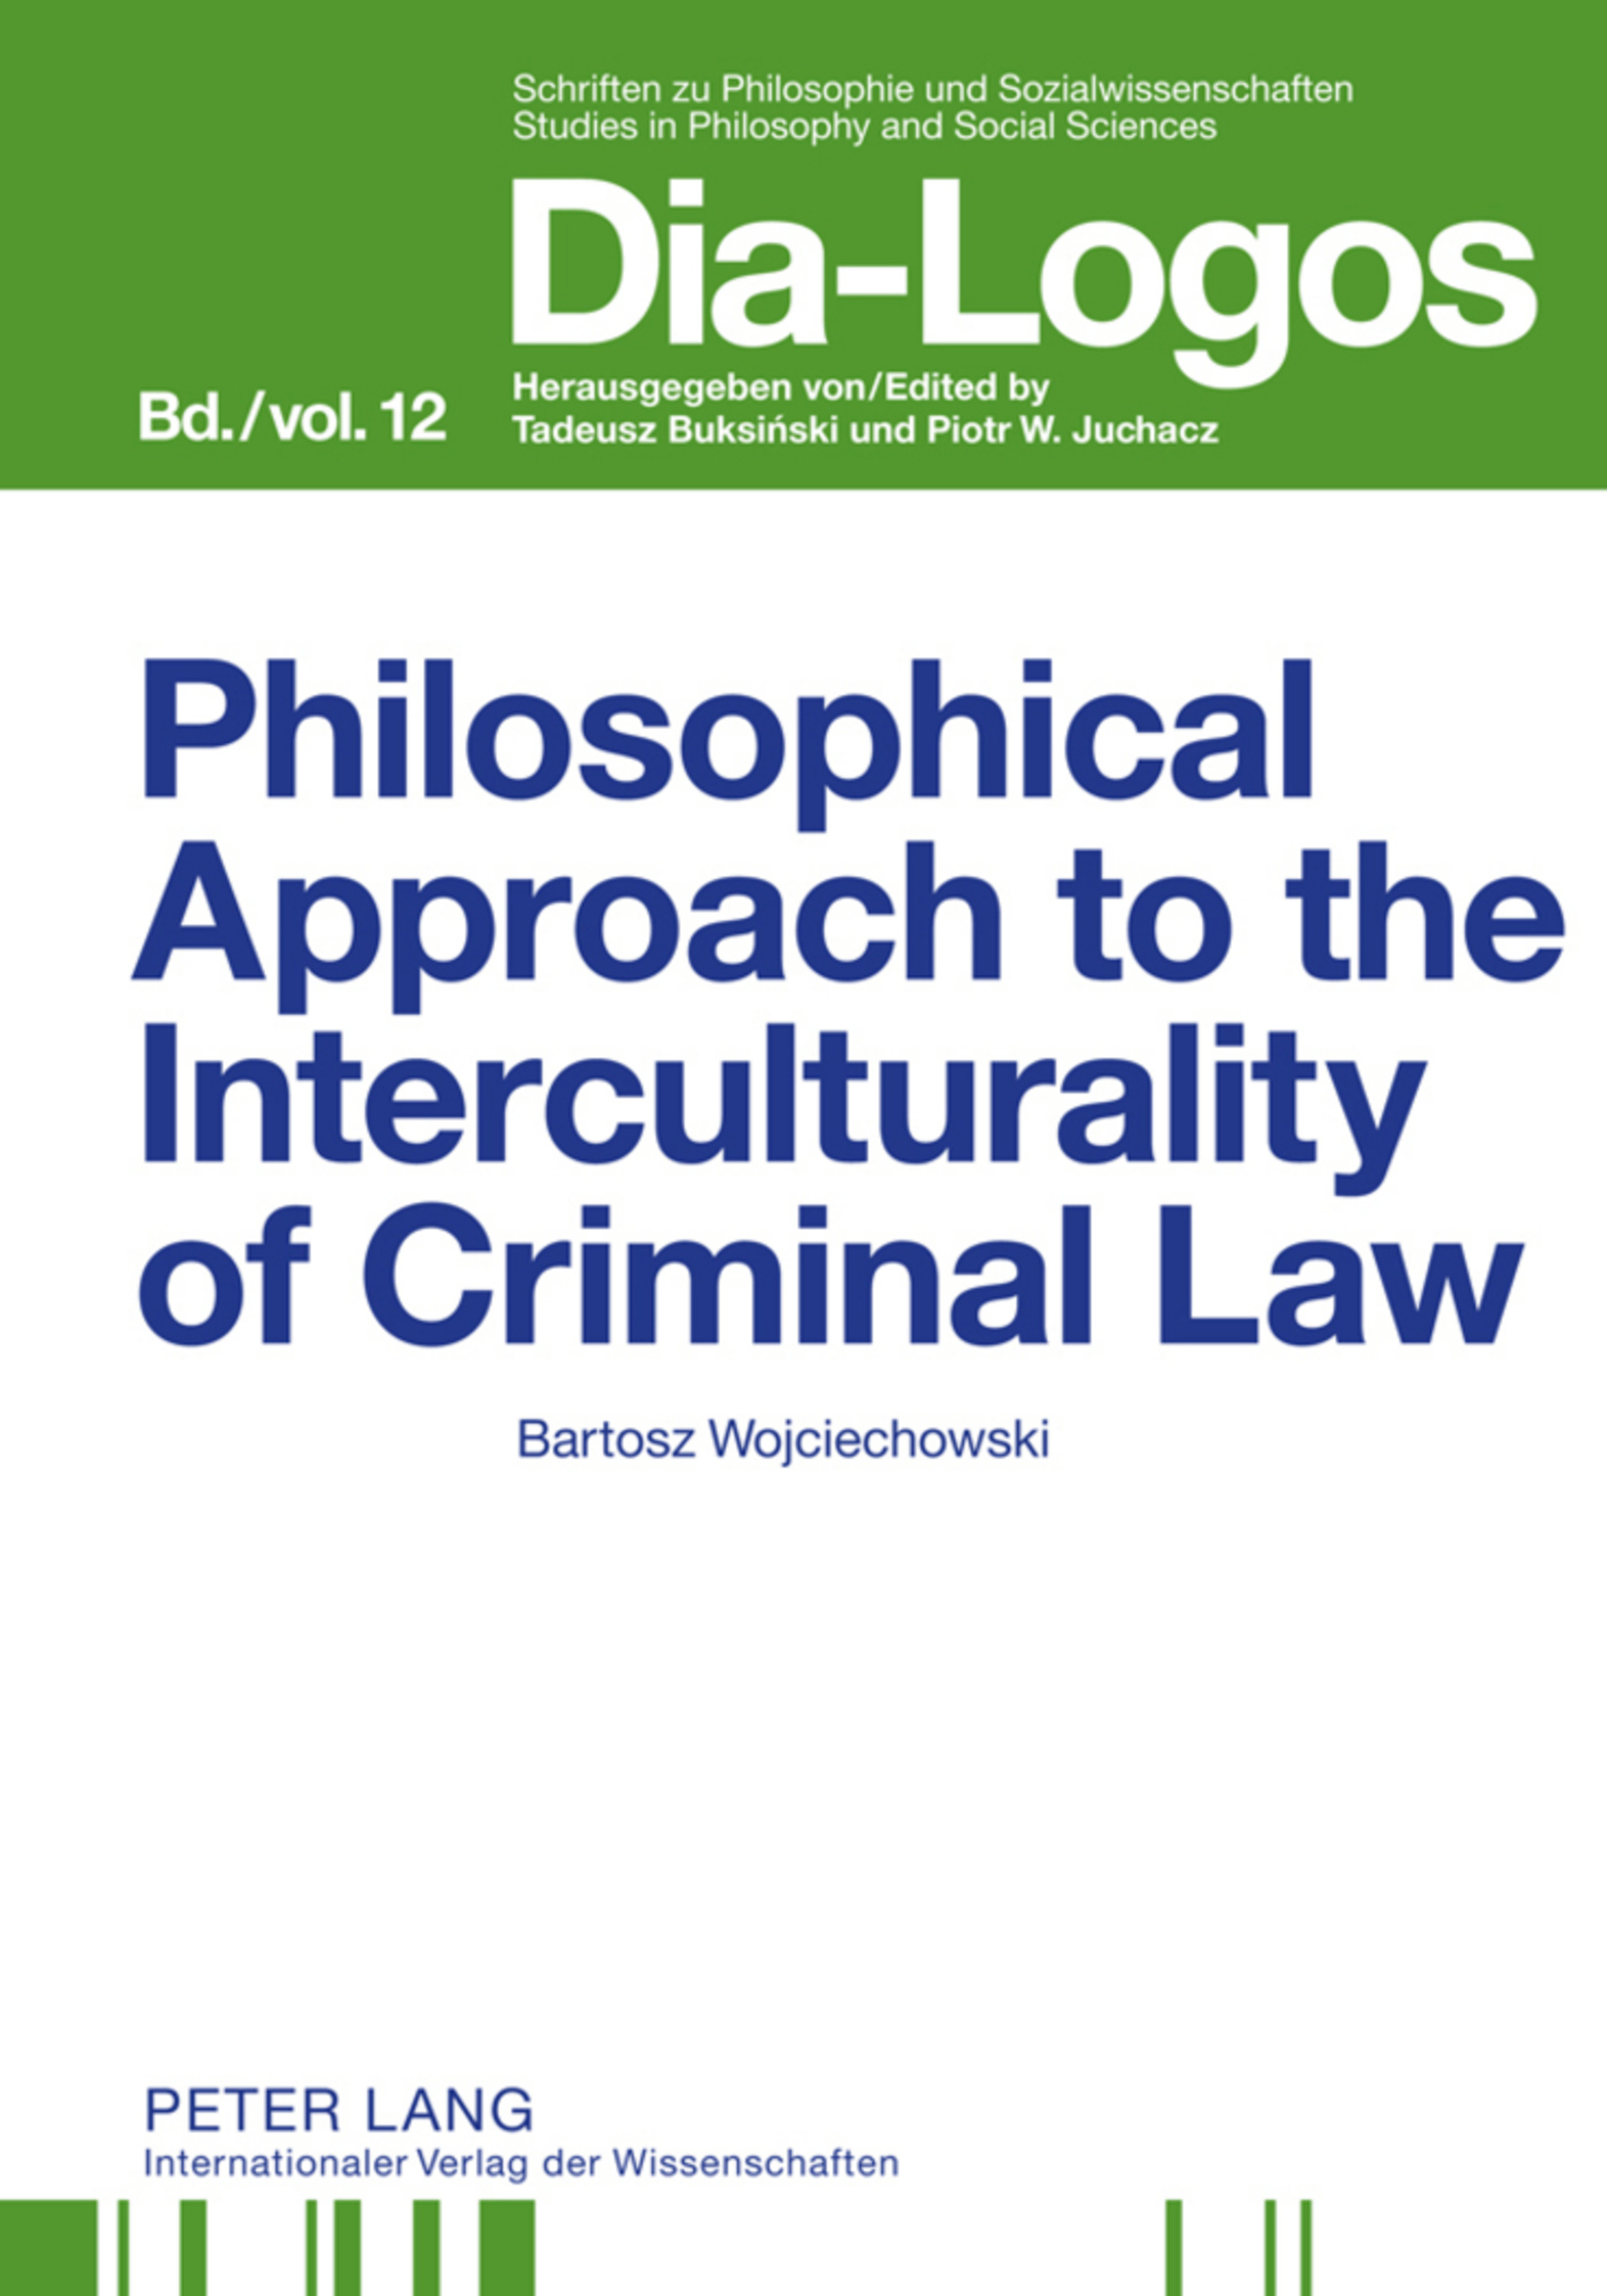 Title: Philosophical Approach to the Interculturality of Criminal Law